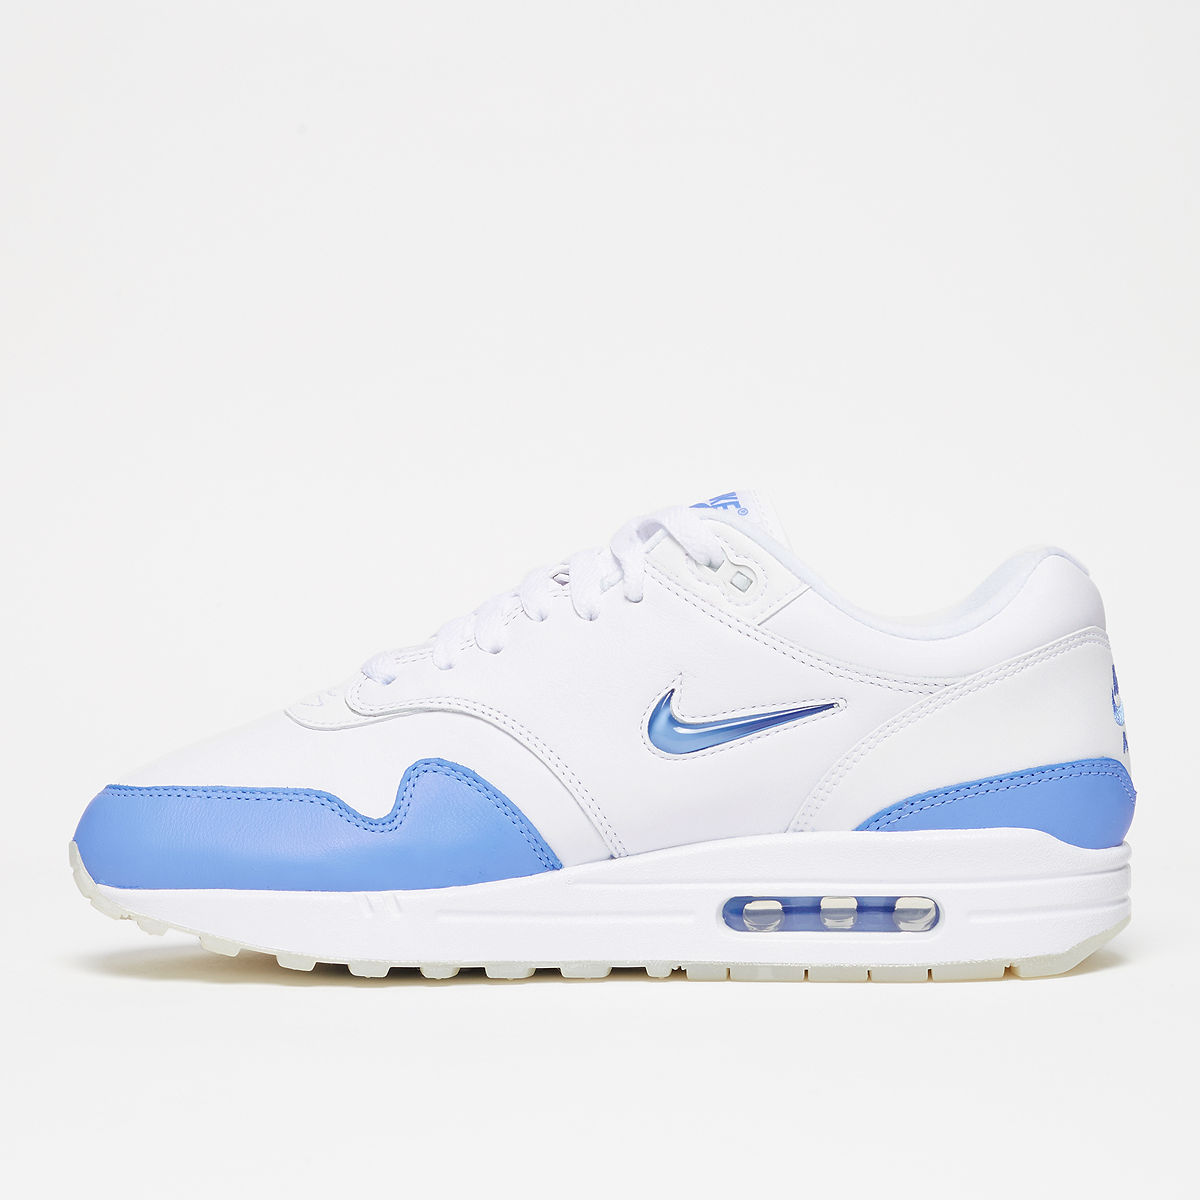 purchase cheap 17dfd d9fa4 Nike Air Max 1. Color  White University Blue-University Blue Style  918354-102.  Release Date  07 13 2017